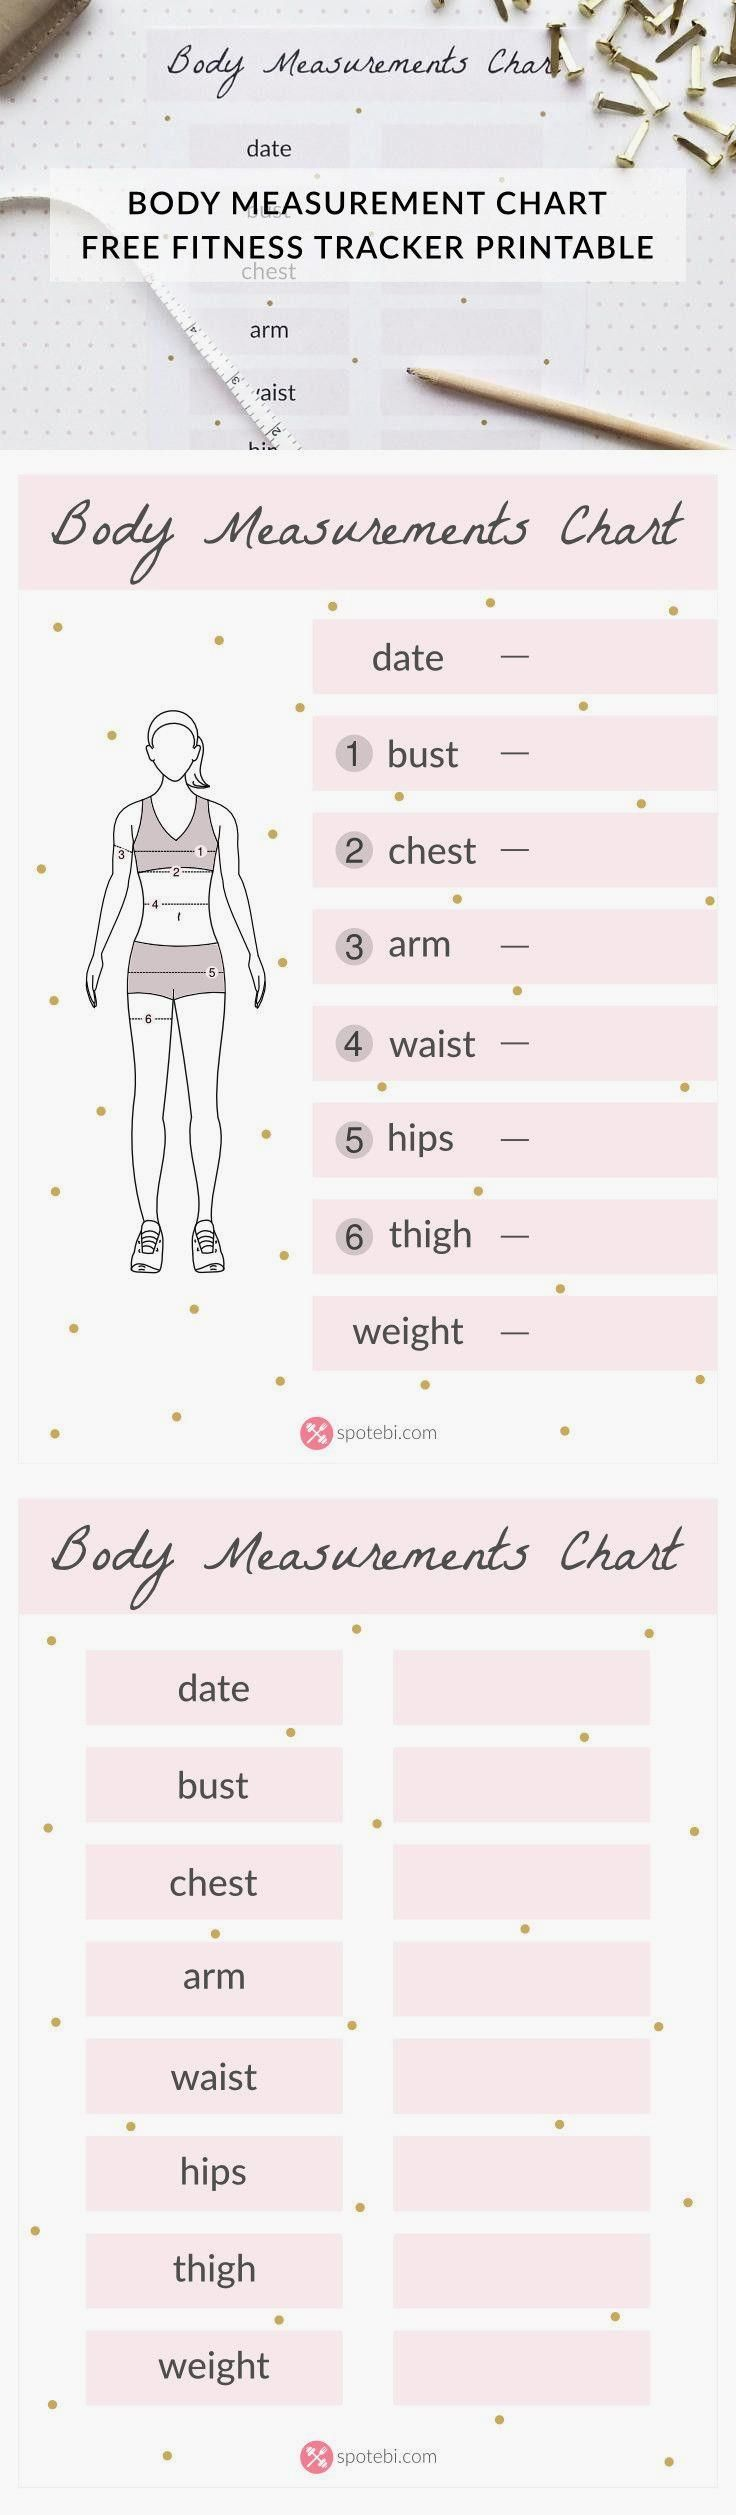 Free body measuremen  Free body measurement chart! Get your workout plan together, set your exercise goals and track your progress with our fun fitness tracker printable templates!  www.spotebi.com/...